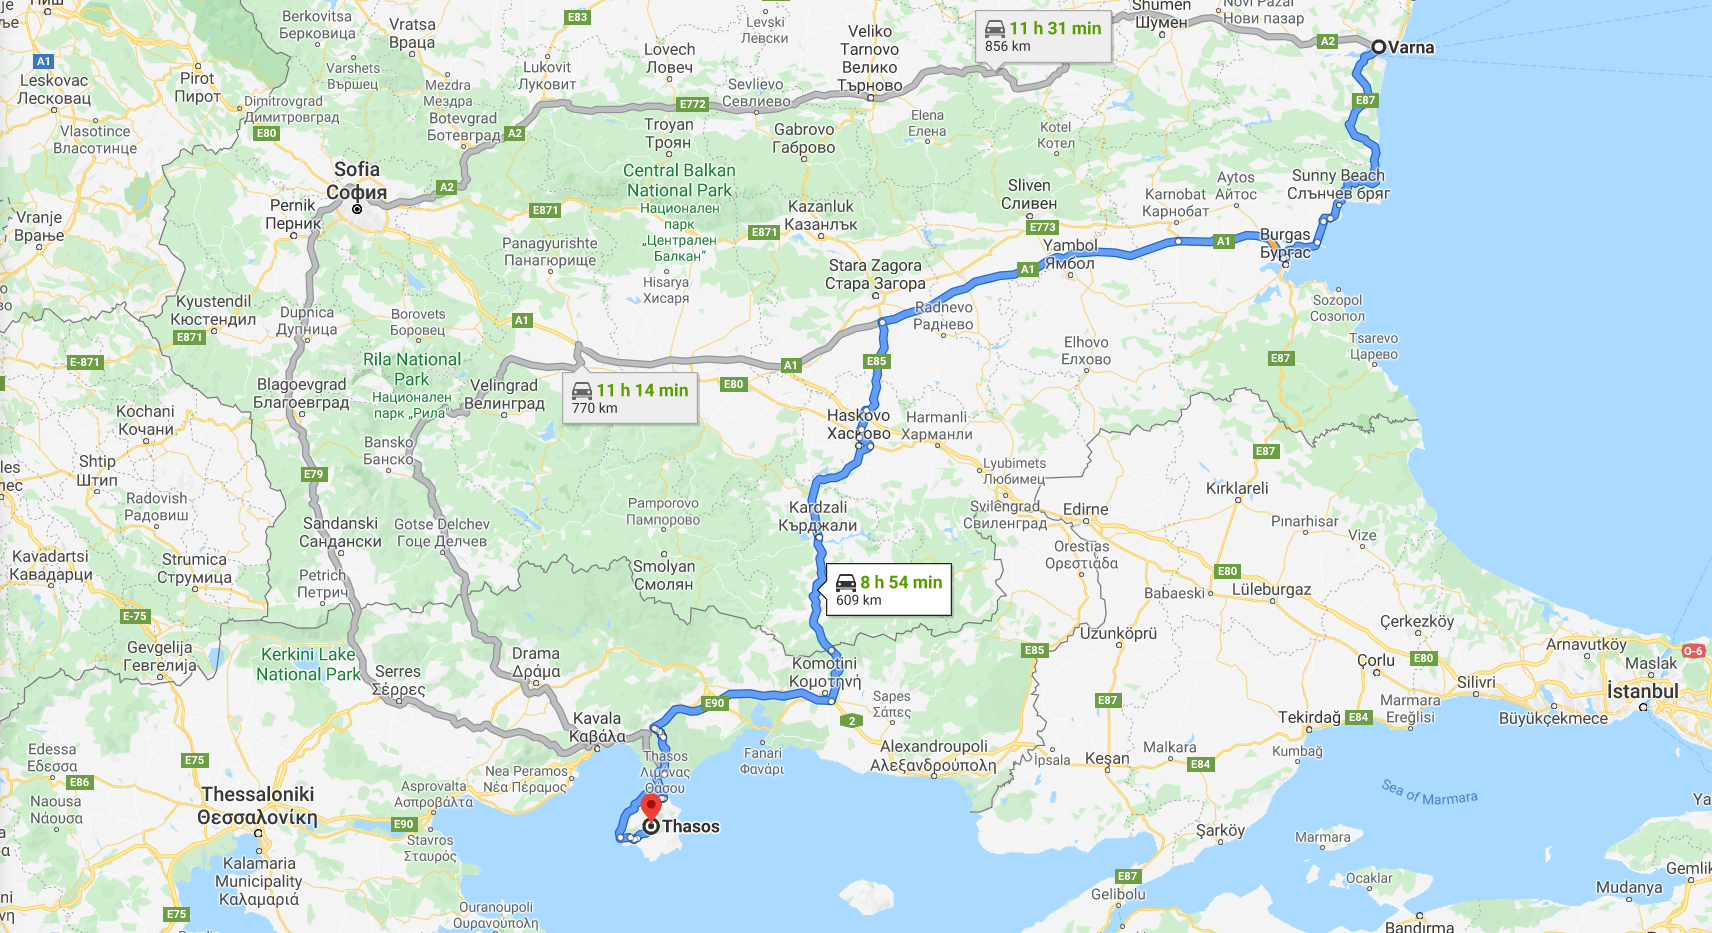 Route from Varna to Thassos